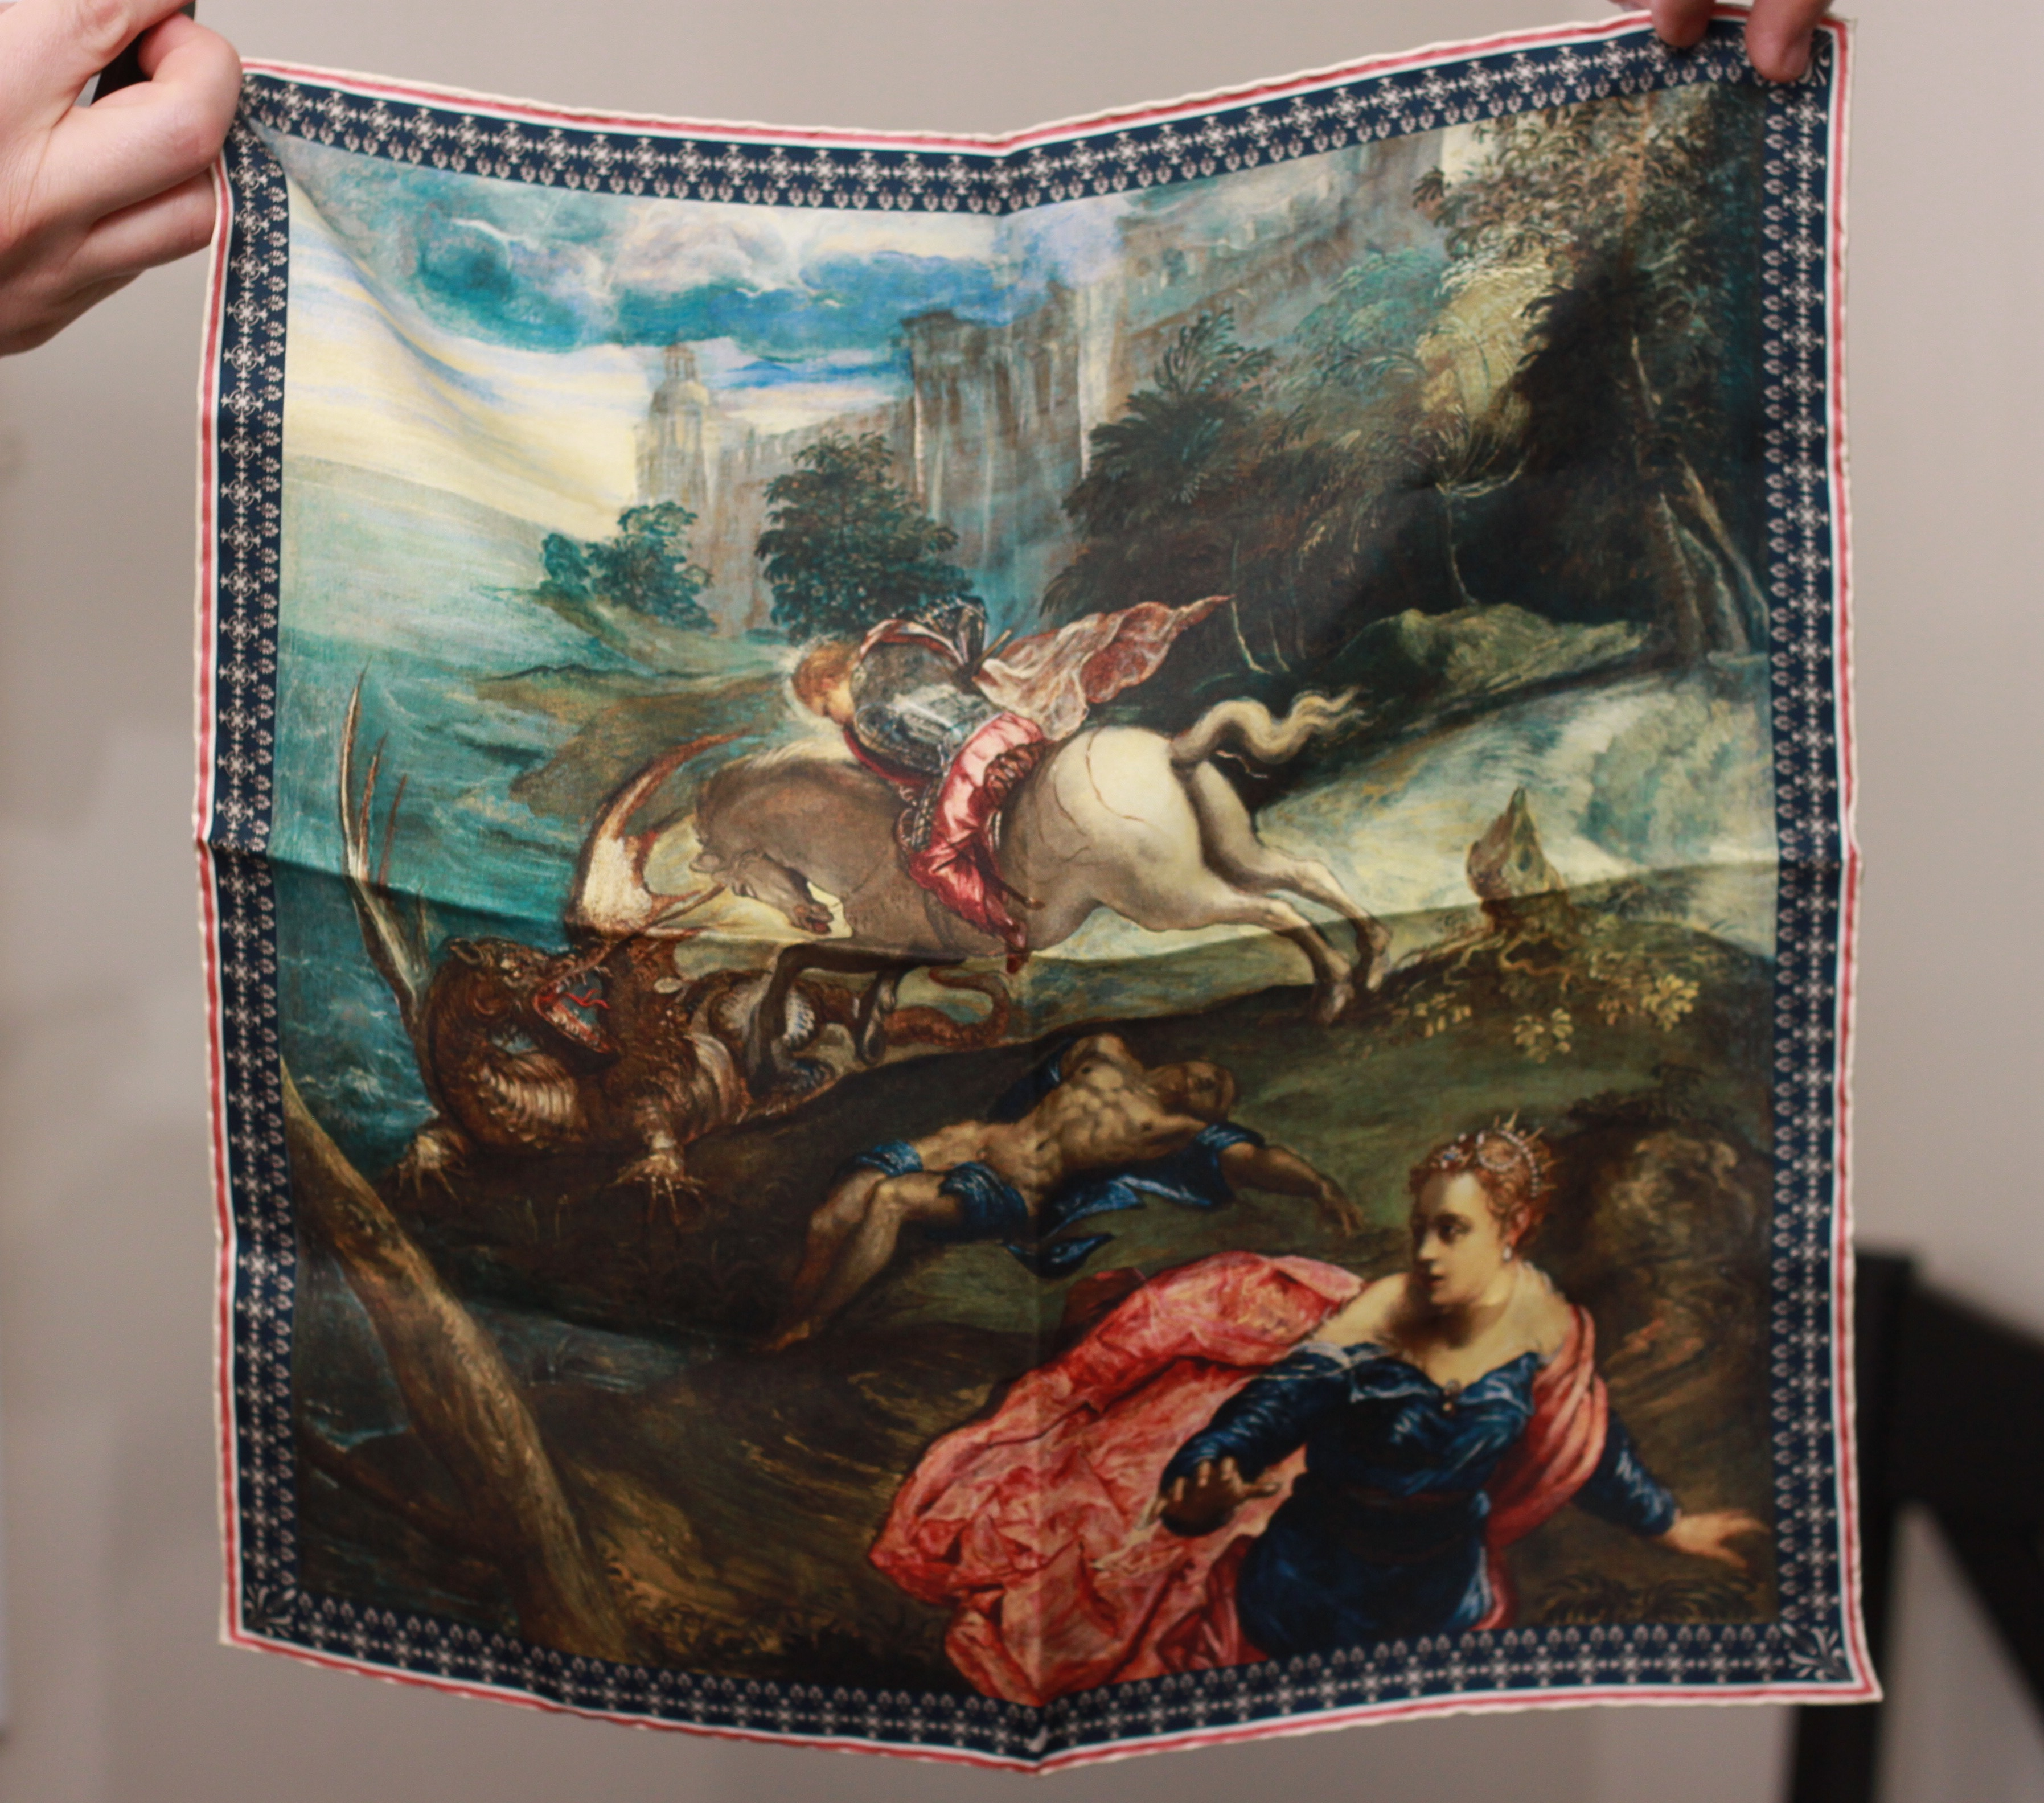 rampley & co, rampley & co pocket square, pocket square, national gallery collection, menswear, fine art, st. george and the dragon,